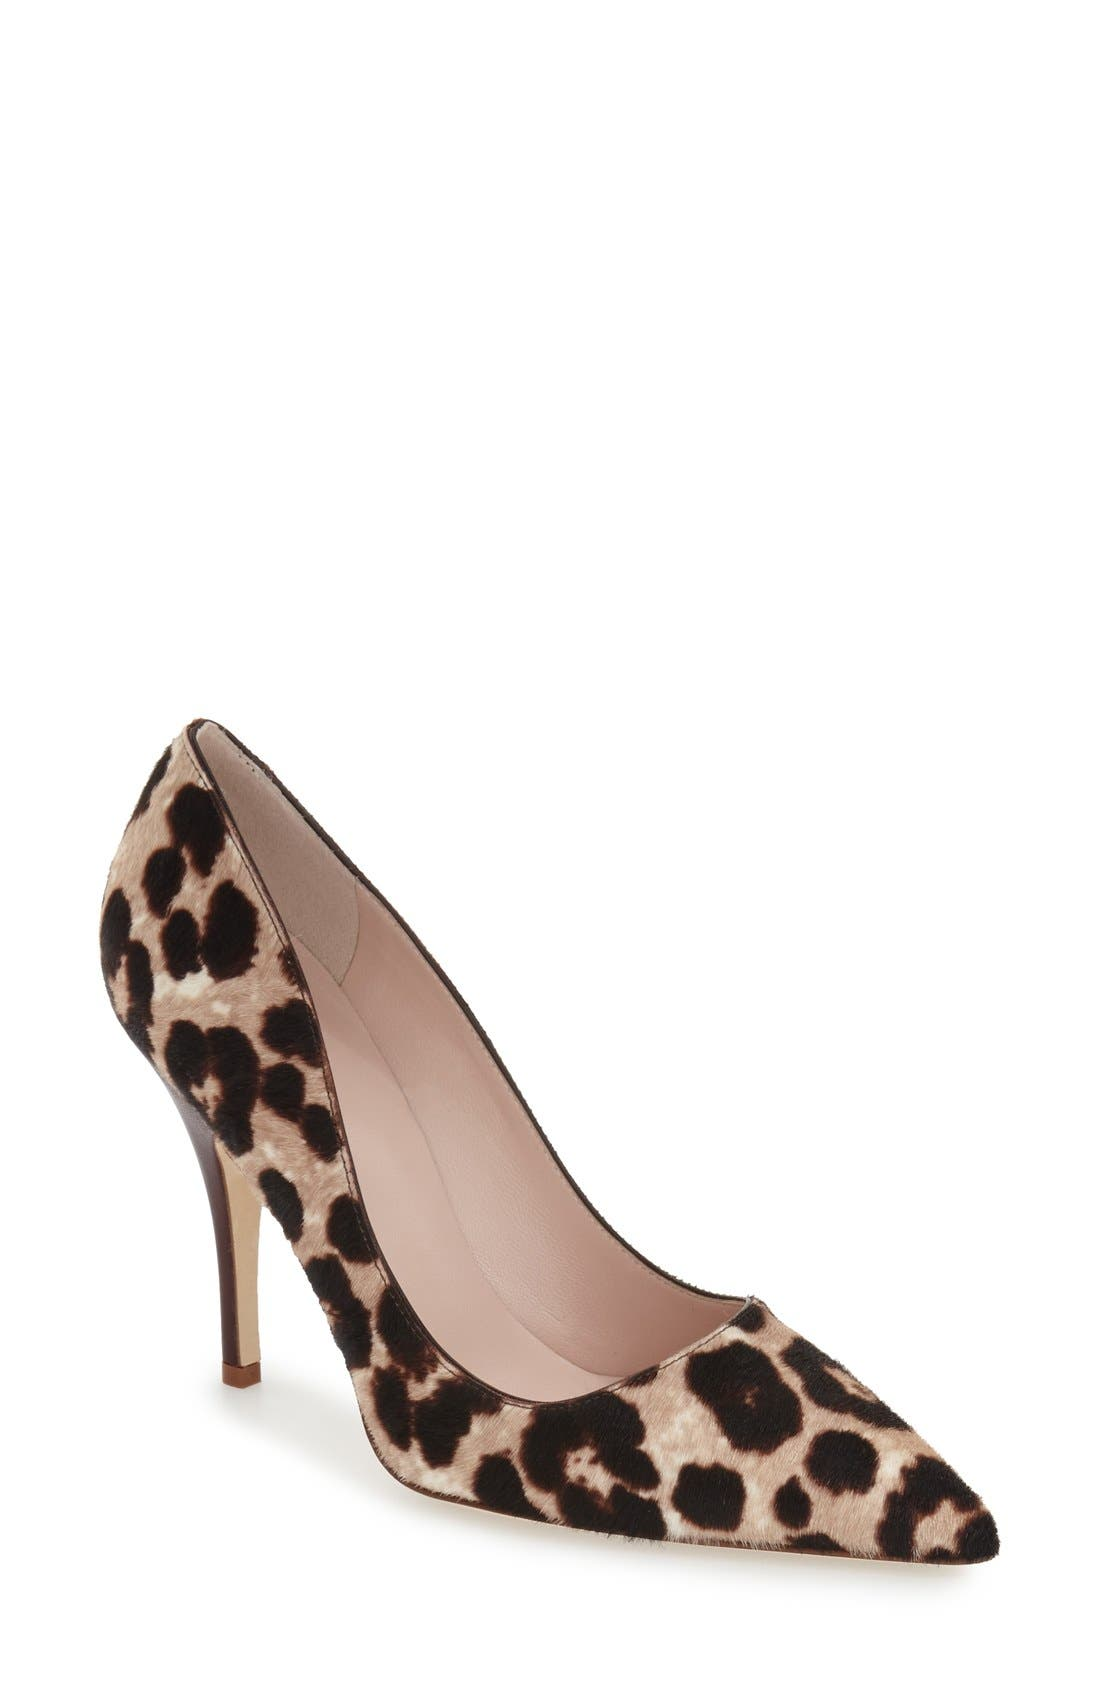 Main Image - kate spade new york 'licorice too' genuine calf hair pump (Women)